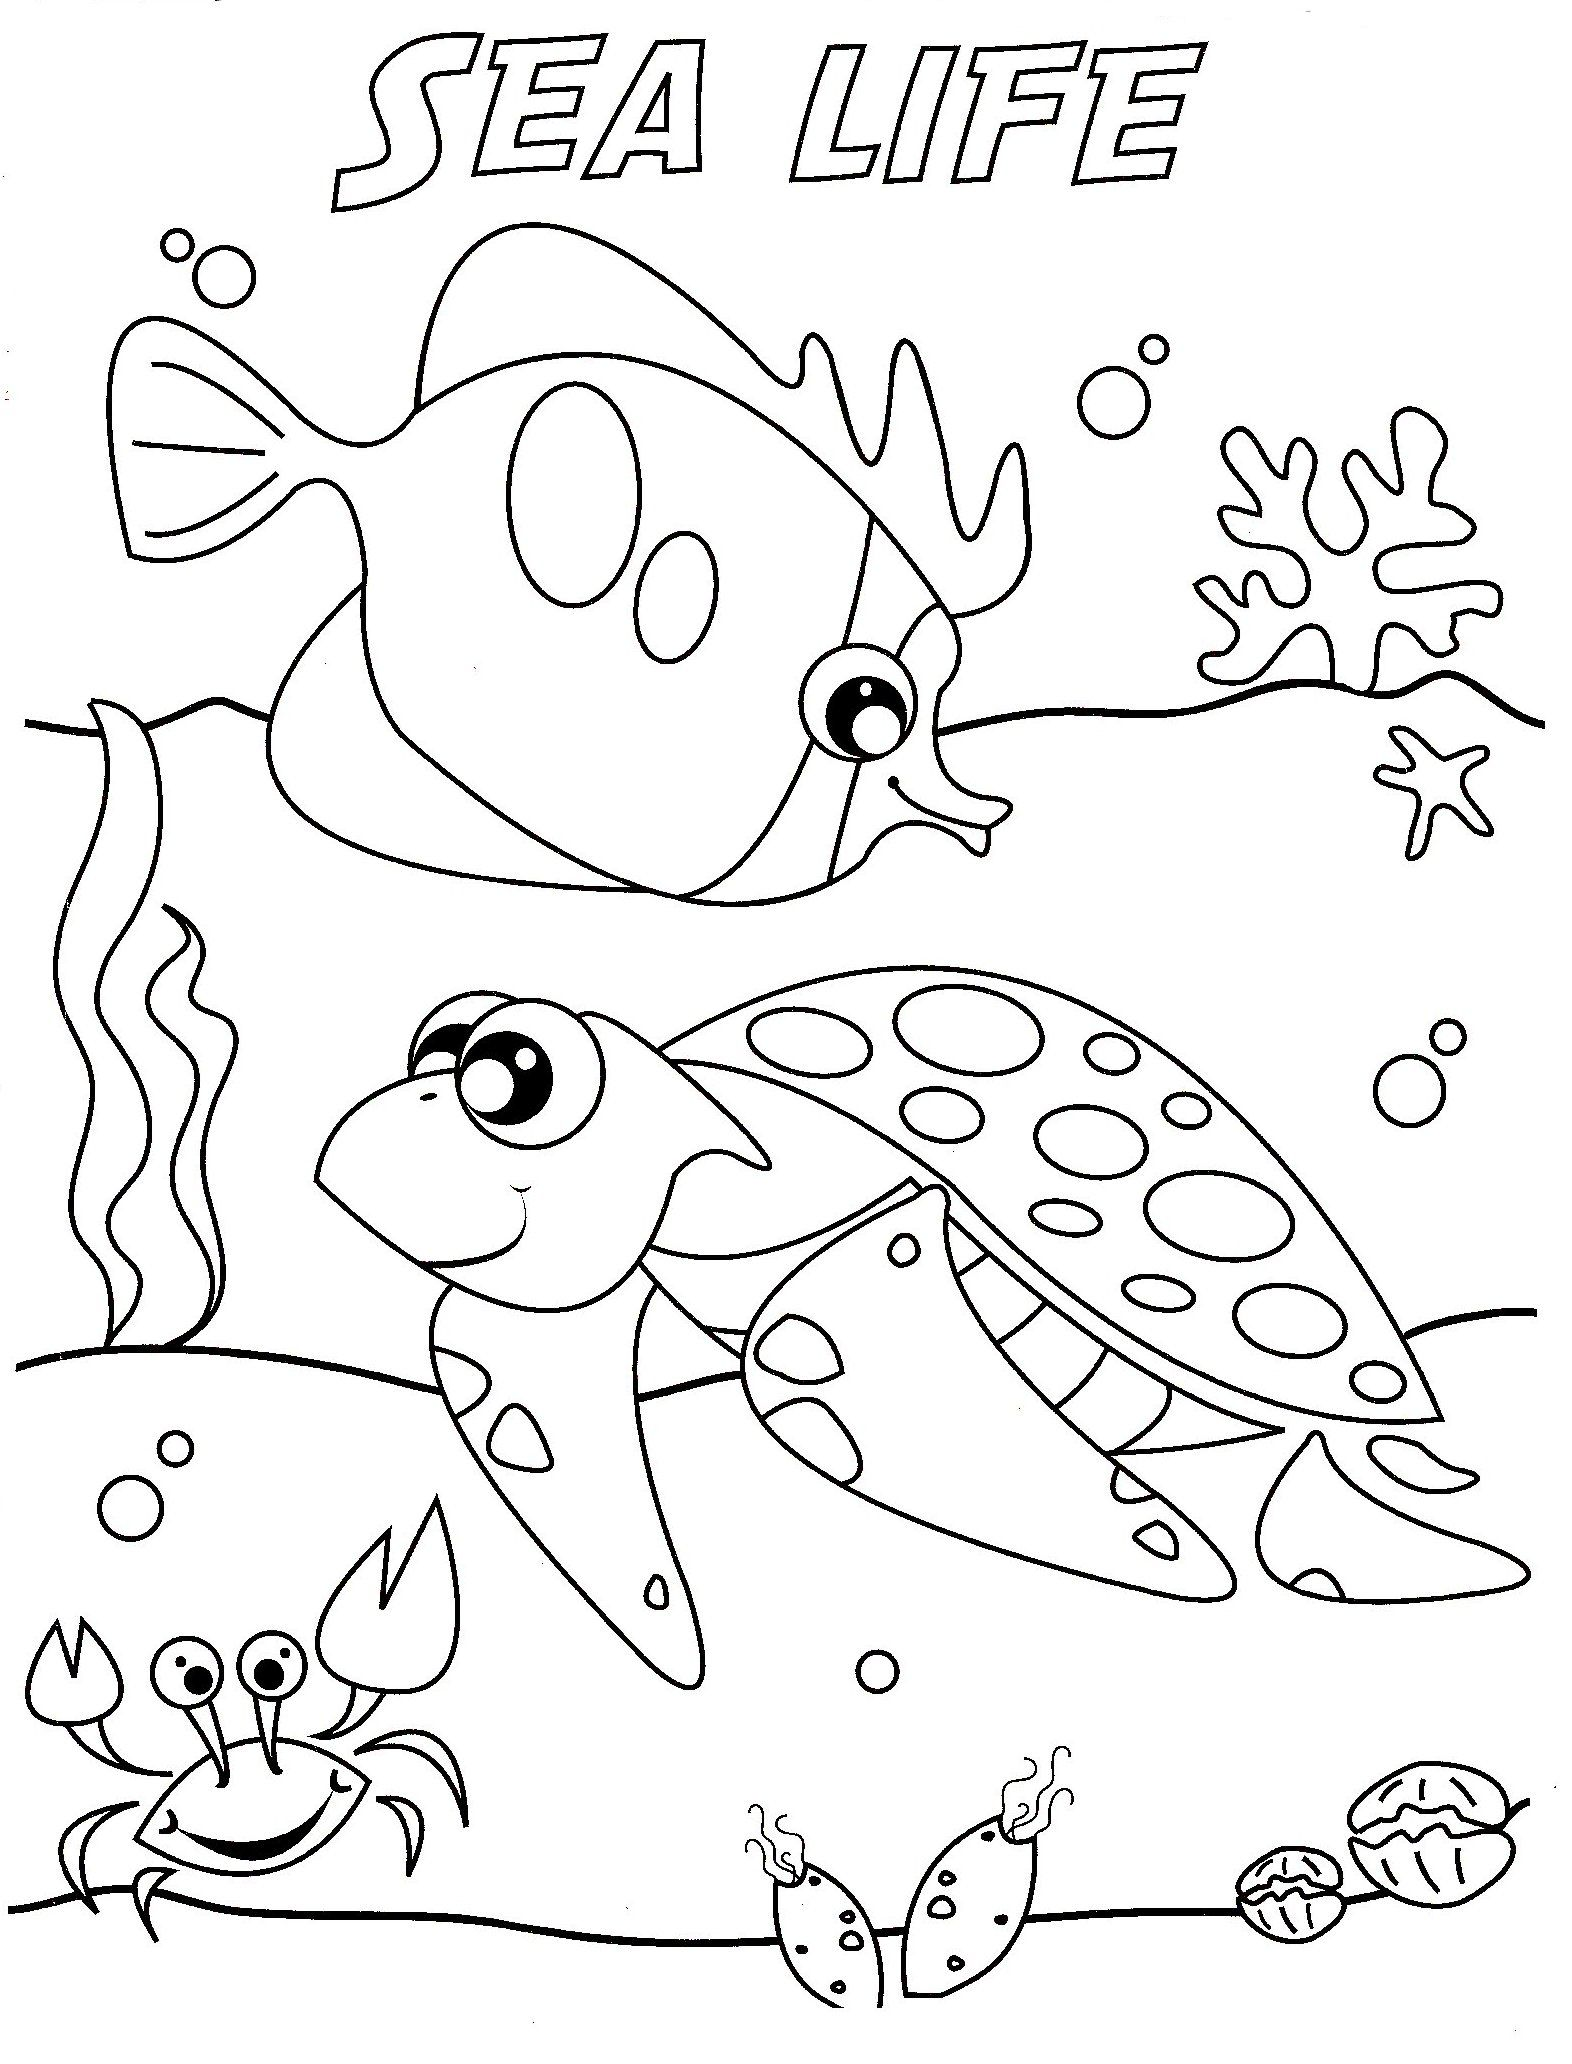 ocean life coloring pages to download and print for free home ocean coloring pages free. Black Bedroom Furniture Sets. Home Design Ideas